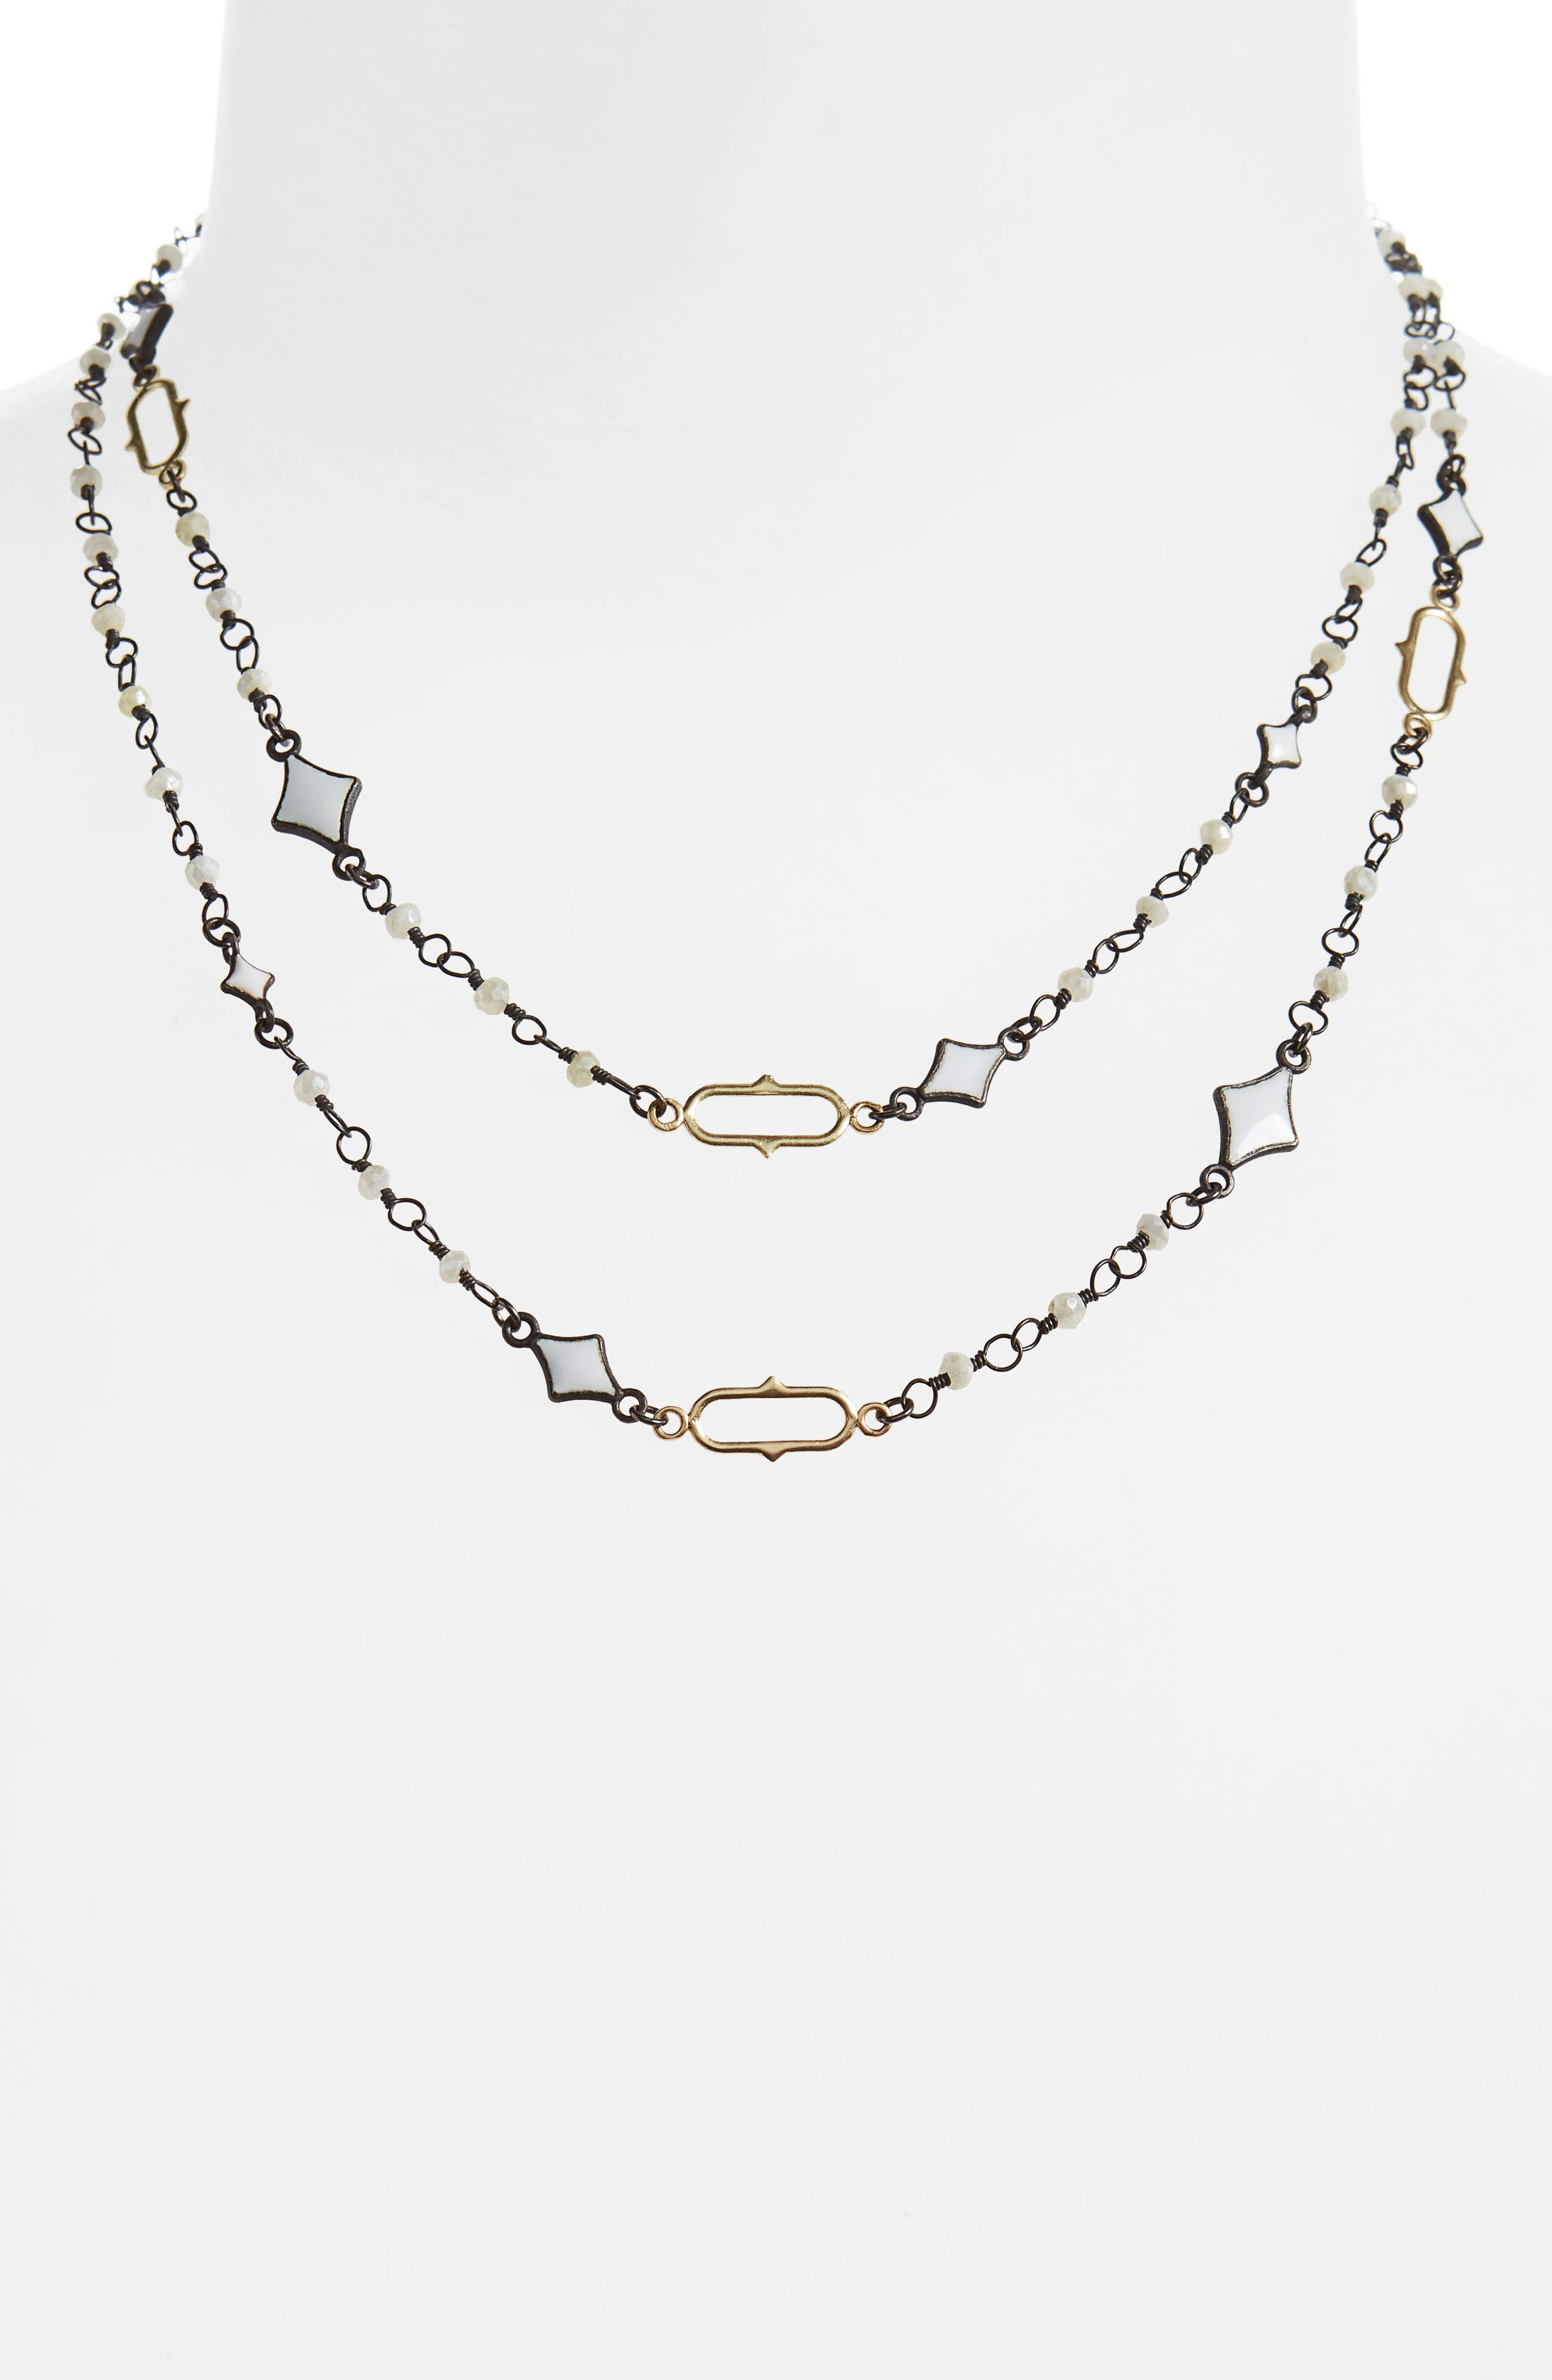 Old World Enamel Chain Necklace,                             Alternate thumbnail 2, color,                             BLACKENED SILVER